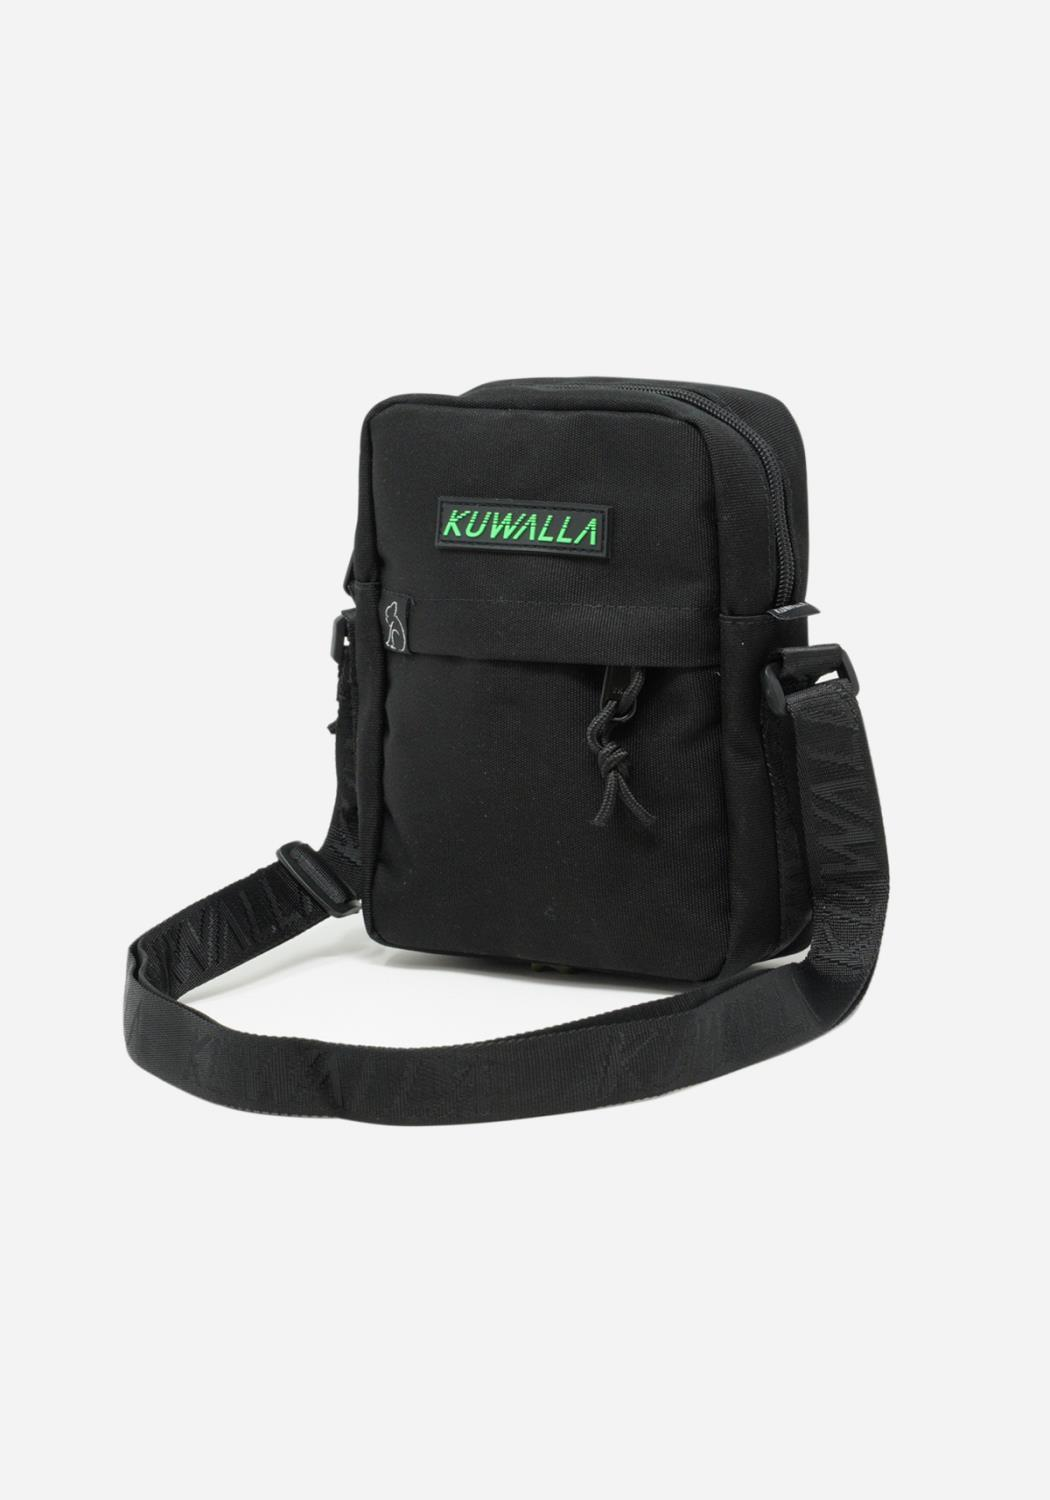 KUWALLA- Shoulder Bag